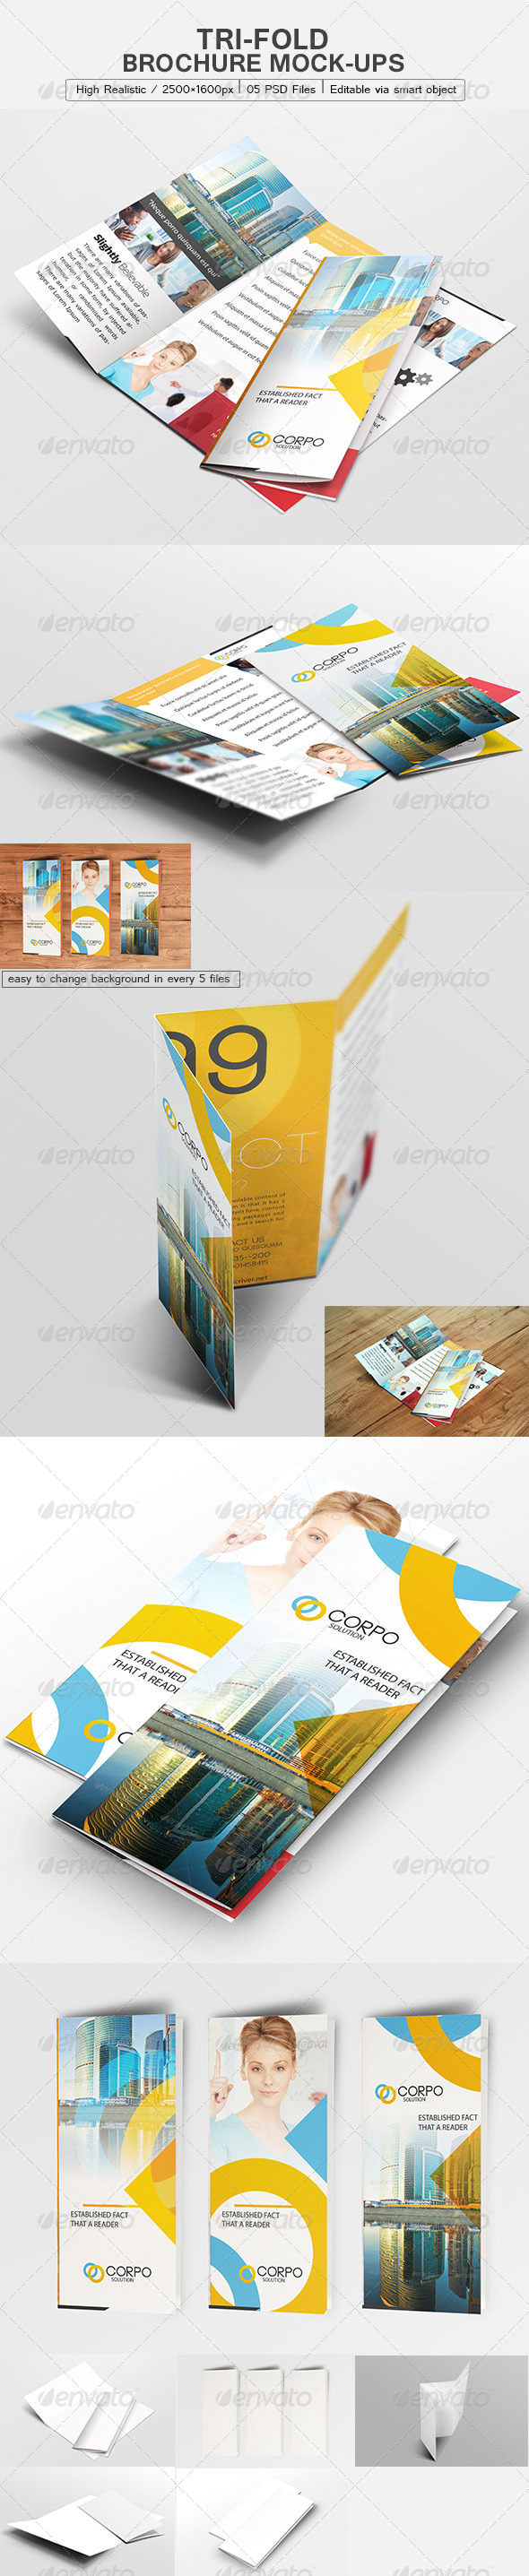 GraphicRiver Tri-Fold Brochure Mock-Up 6223721